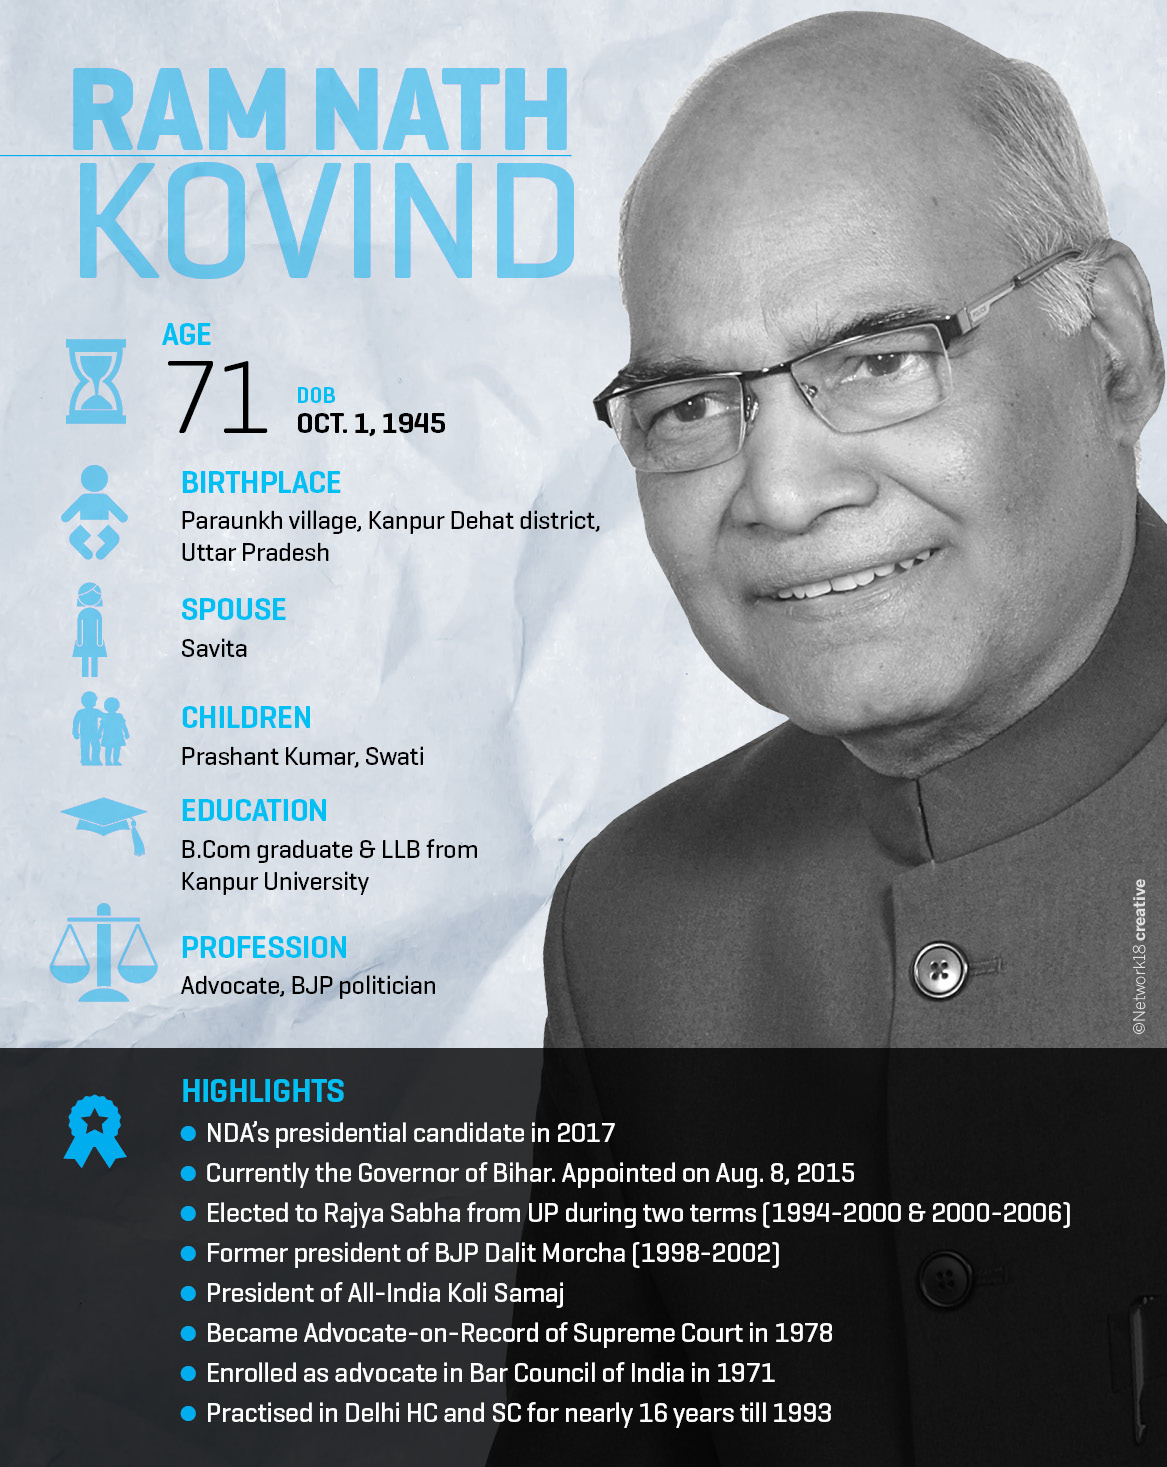 Trumps choice for us attorney general says he can stand up to him hindustan times - In Case You Missed It Here S All You Need To Know About Nda Presidential Candidate Ram Nath Kovind